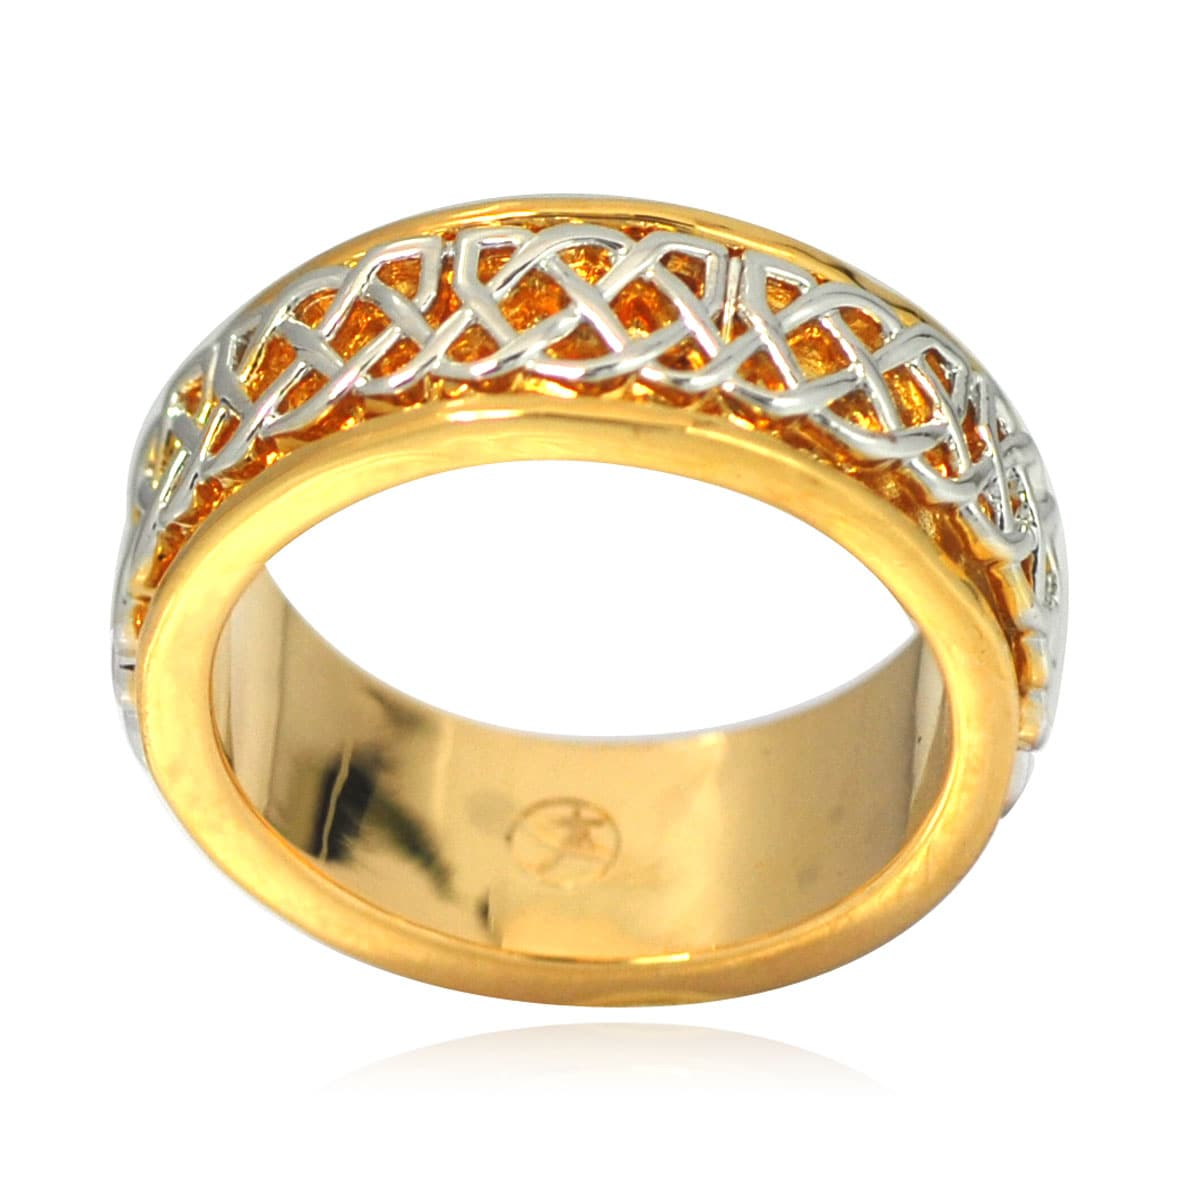 De Buman 14k Gold Overlay Men's Celtic Band